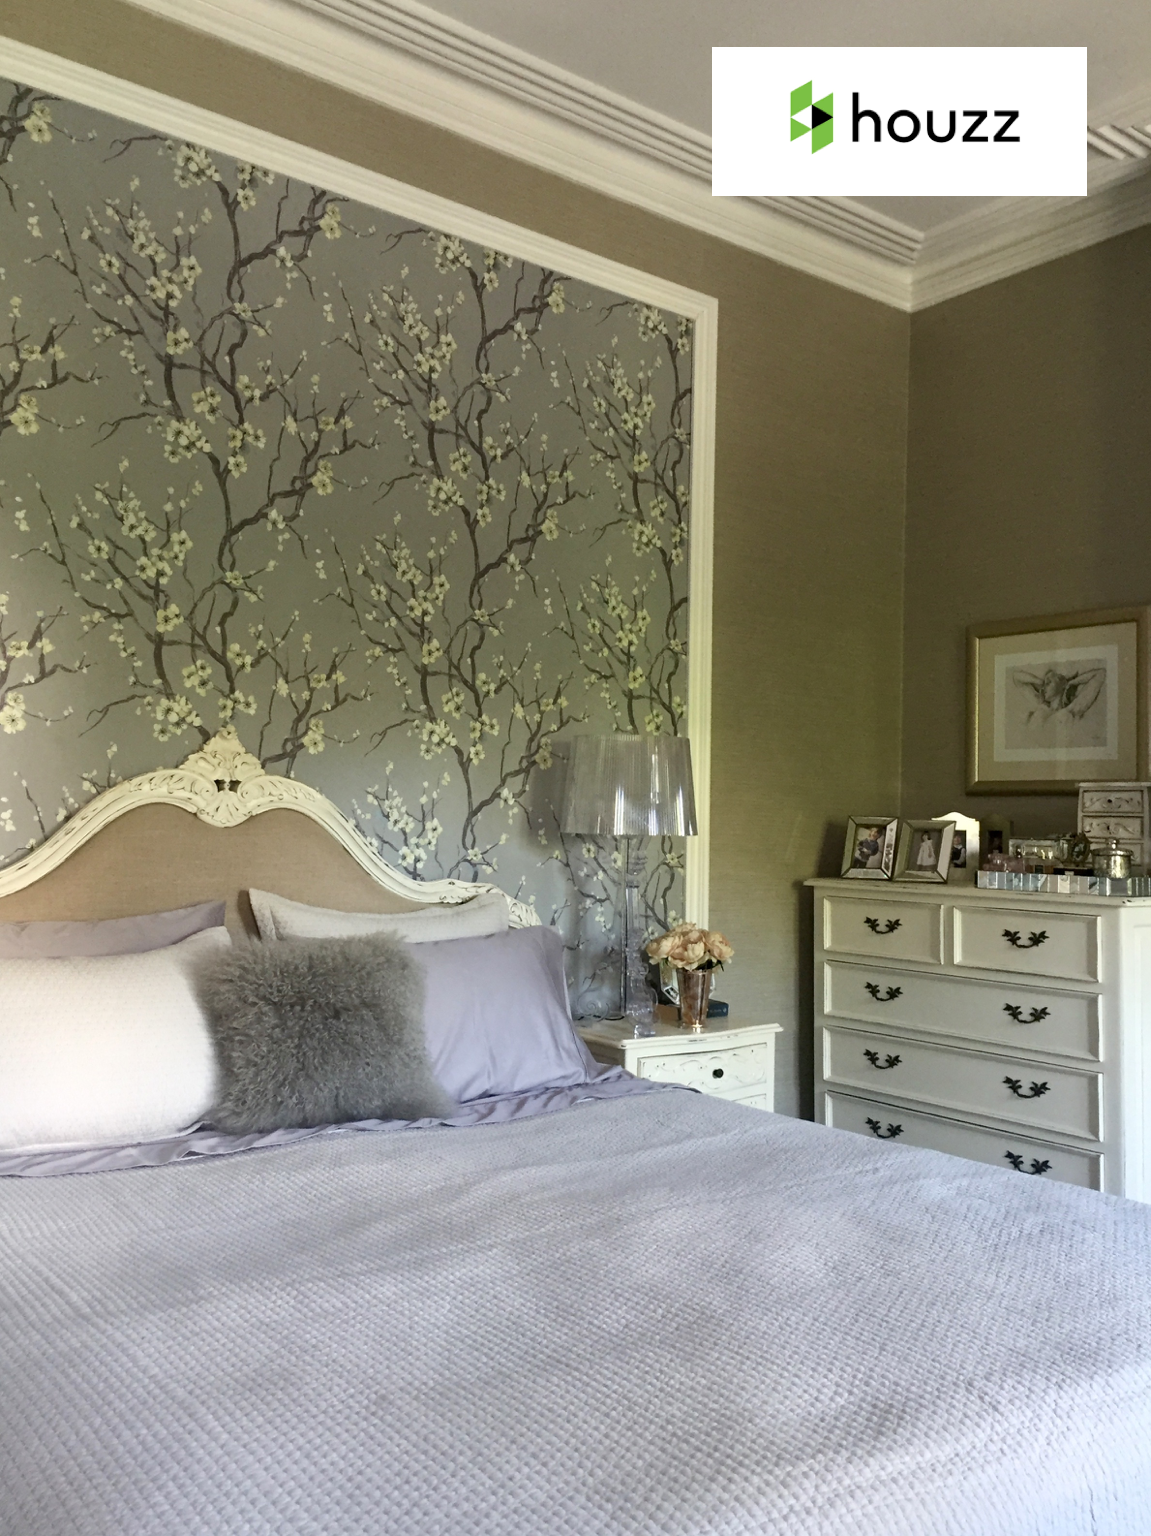 HOUZZ  - September 2016  Mural Wallpapers are Back in Focus